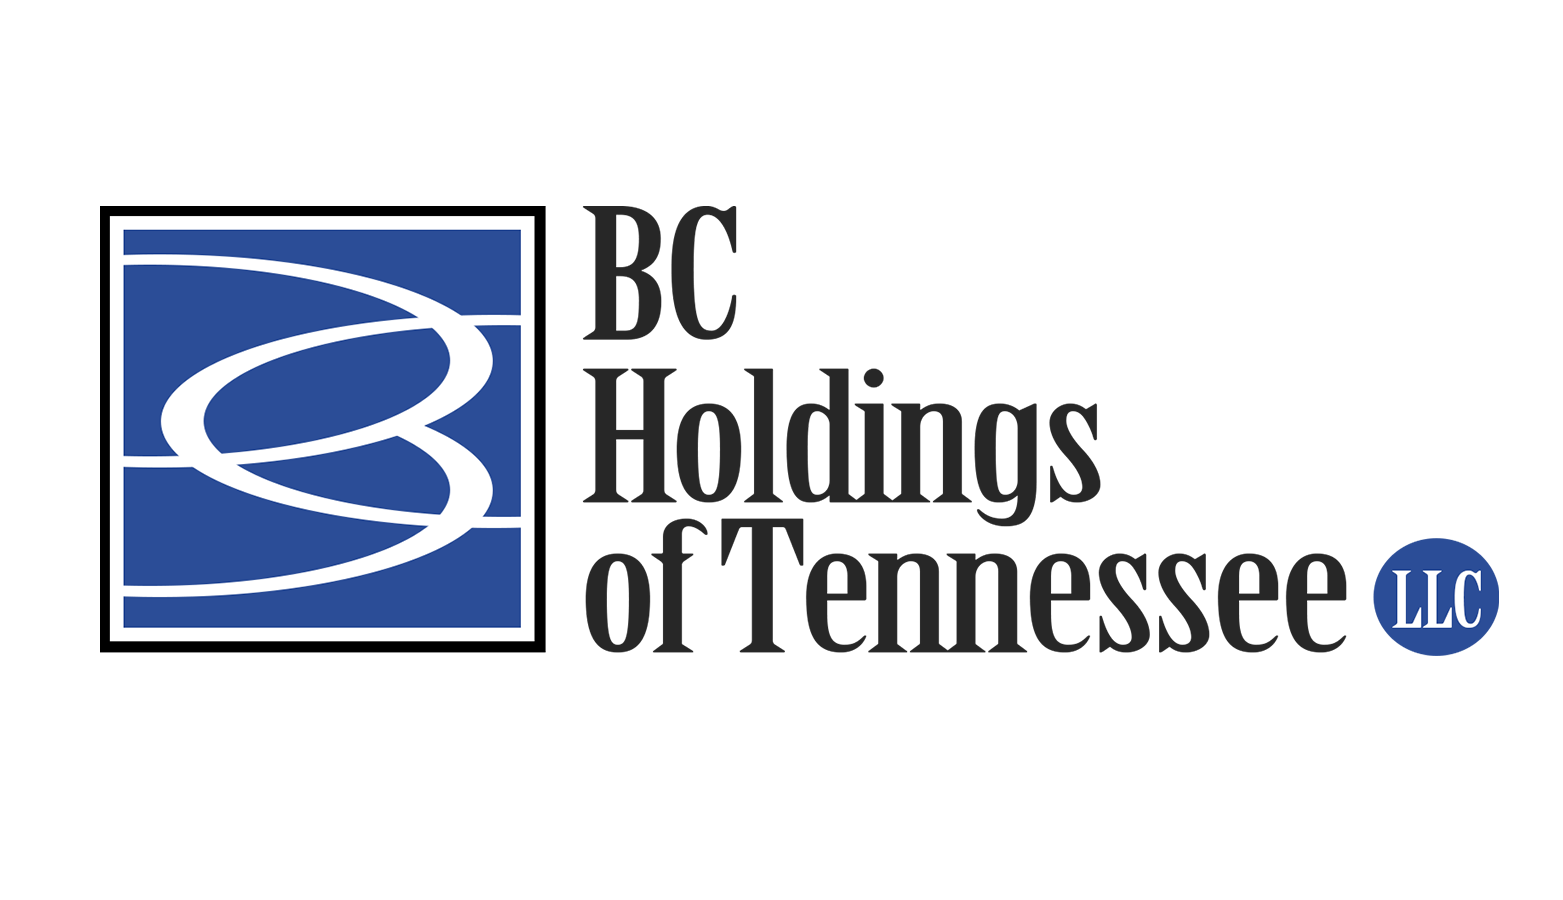 BC Holdings